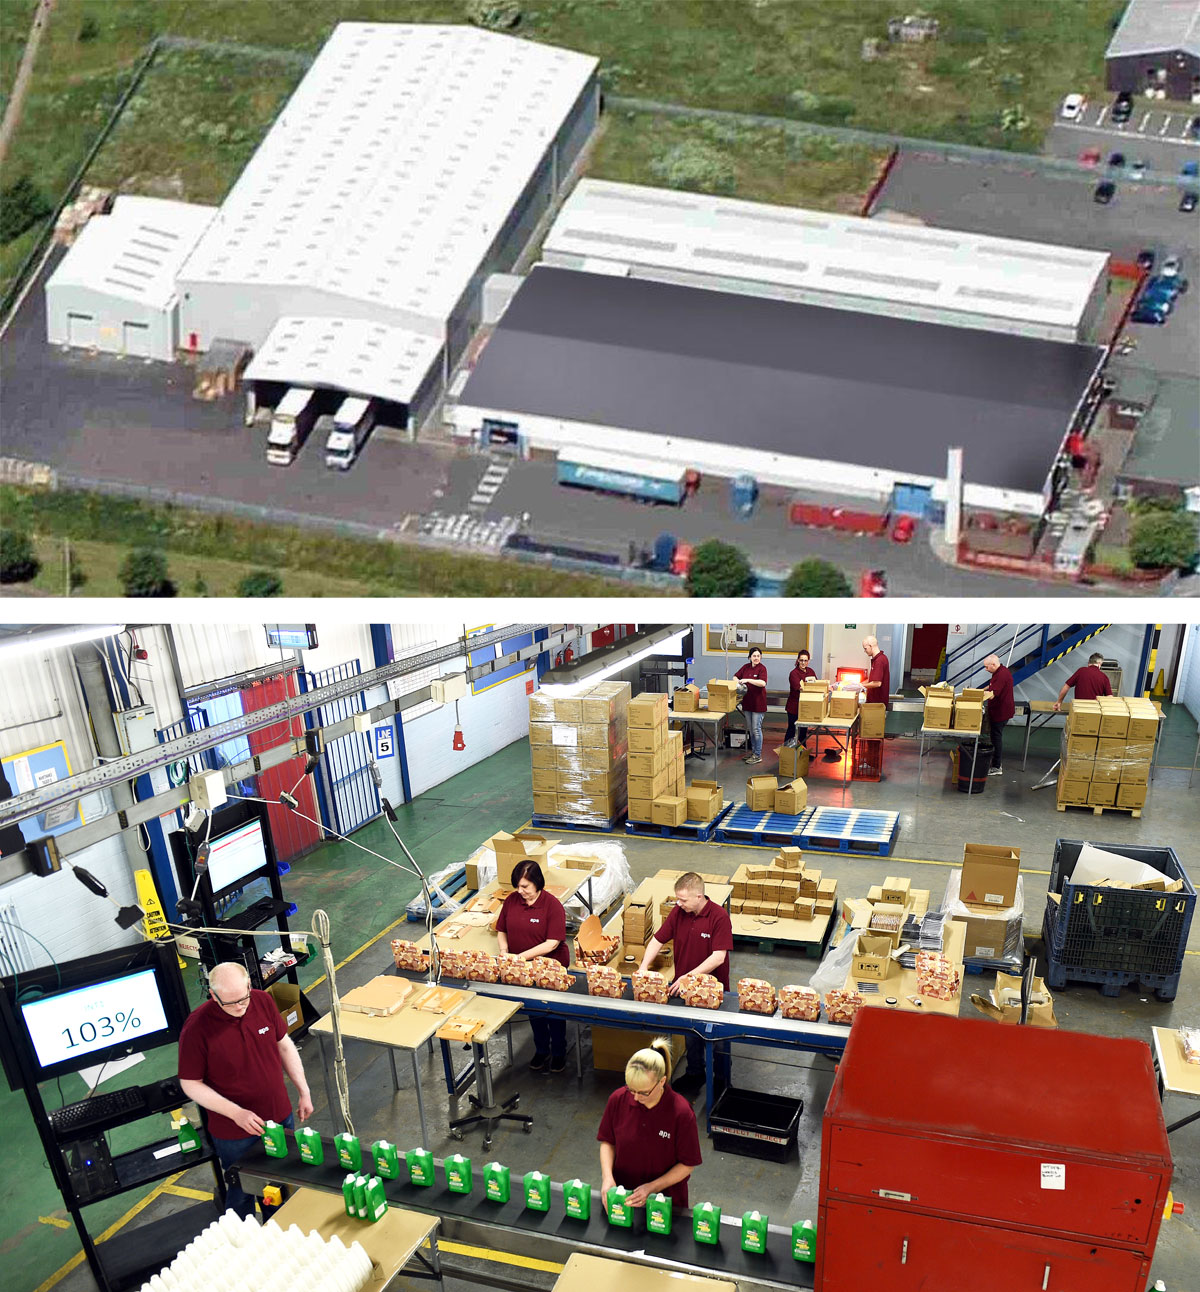 Photo: APS's 65,000 sq ft Blyth factory/fulfilment centre provides gift assembly, pick-and-pack, sub-assembly, labelling, collation, flow-wrapping, blister packing and filling services - and has space for further expansion